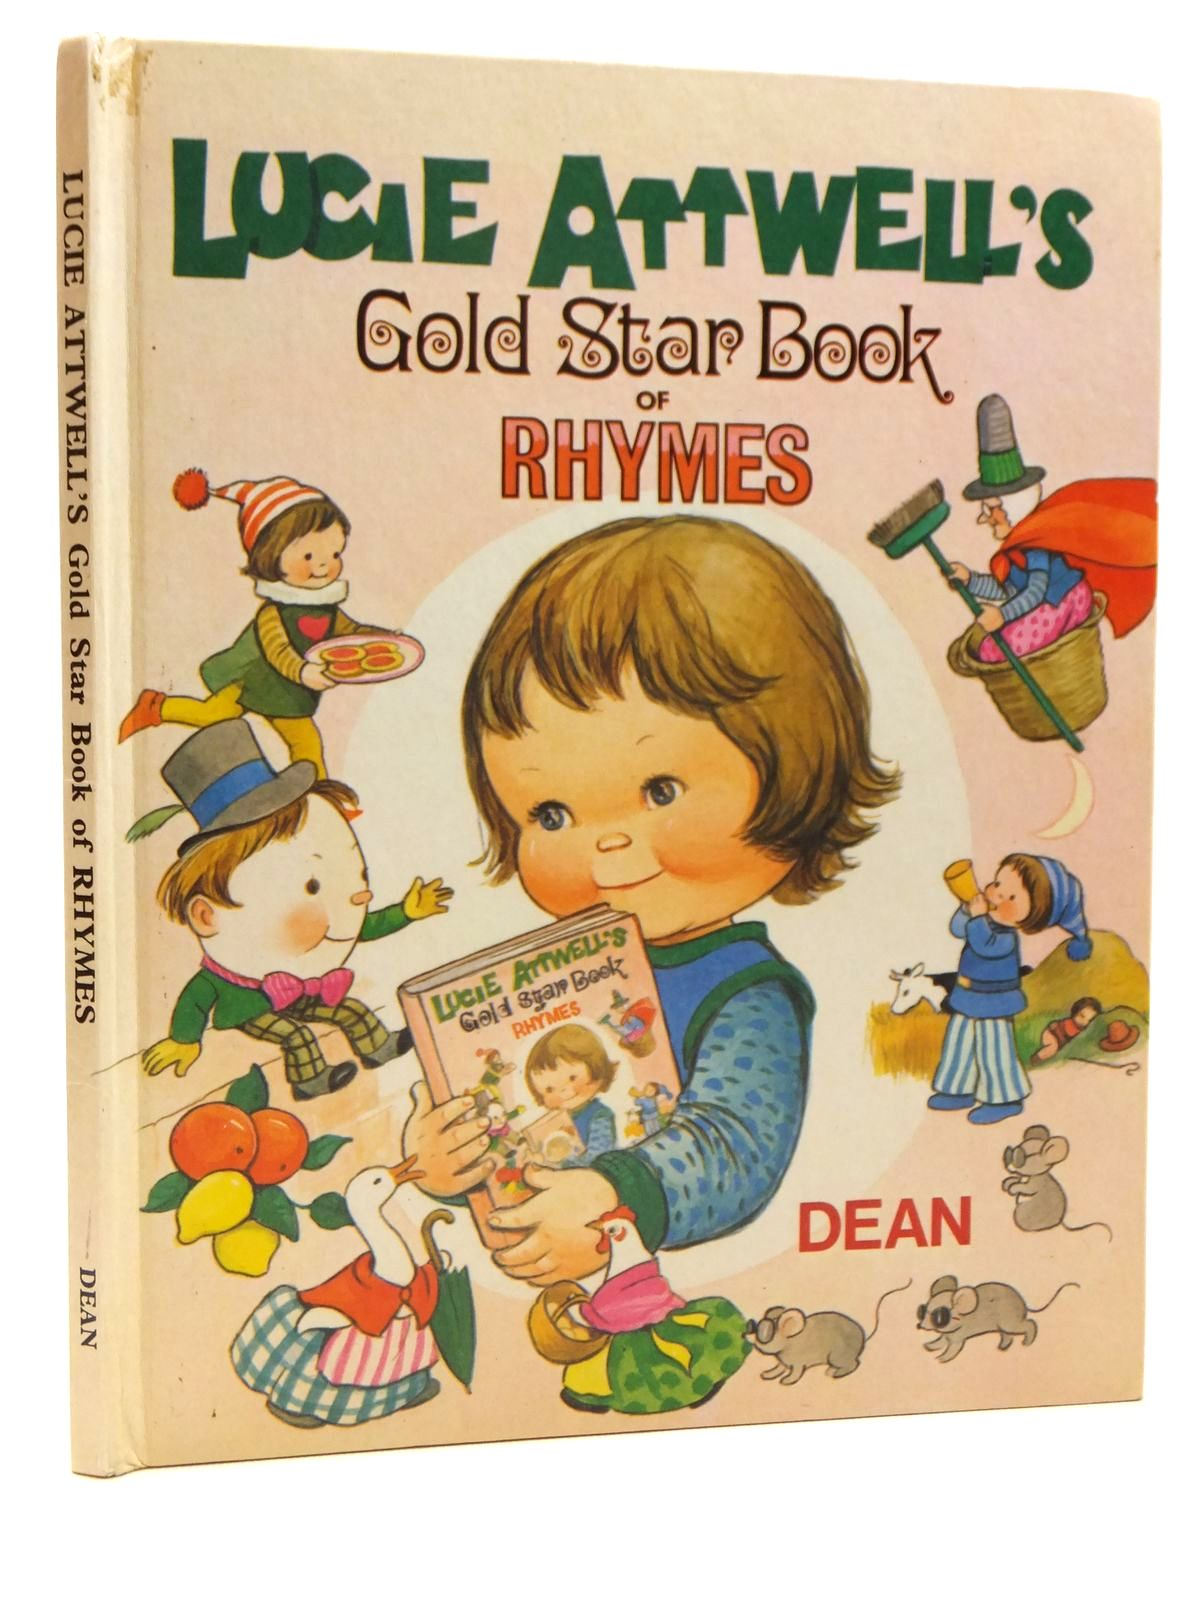 Photo of LUCIE ATTWELL'S GOLD STAR BOOK OF RHYMES illustrated by Attwell, Mabel Lucie published by Dean & Son Ltd. (STOCK CODE: 2121468)  for sale by Stella & Rose's Books